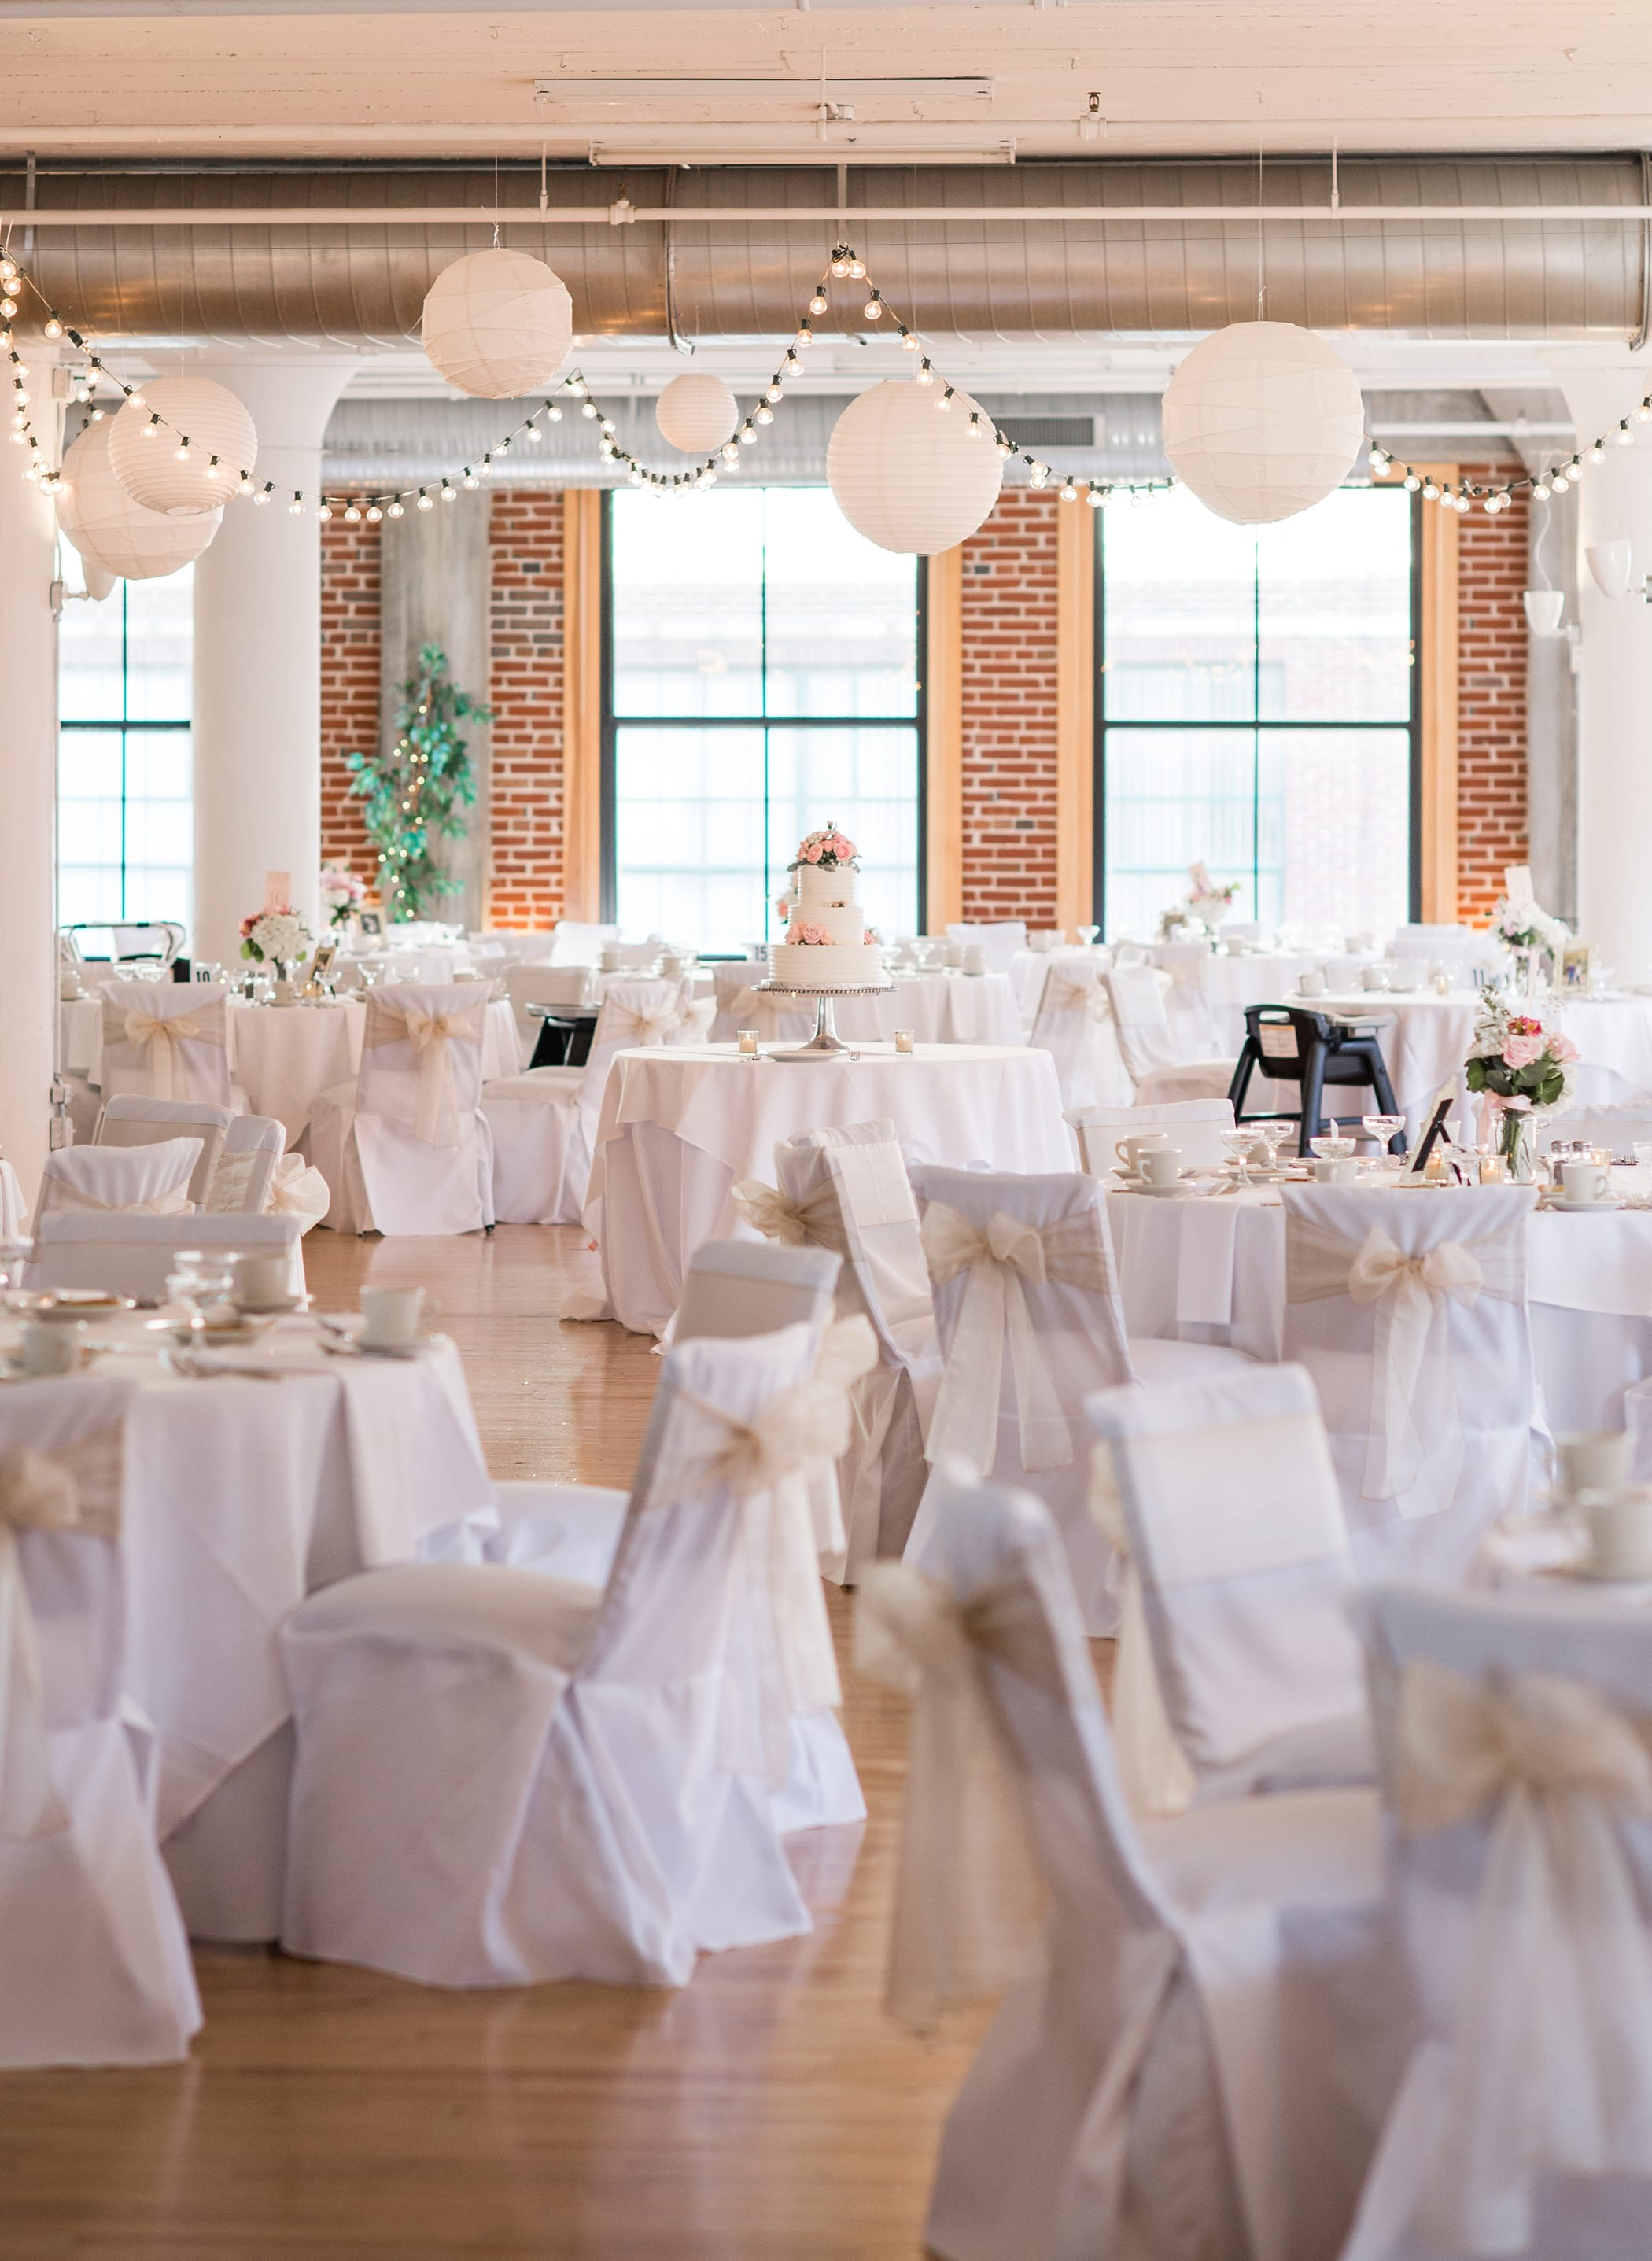 Lovable St Louis Wedding At Windows On Washington By Michelle Logan St Louis City Museum Vault Room Wedding St Louis Wedding Windows On Washington St Louis Weddings Windows On Washington Parking houzz-02 Windows On Washington